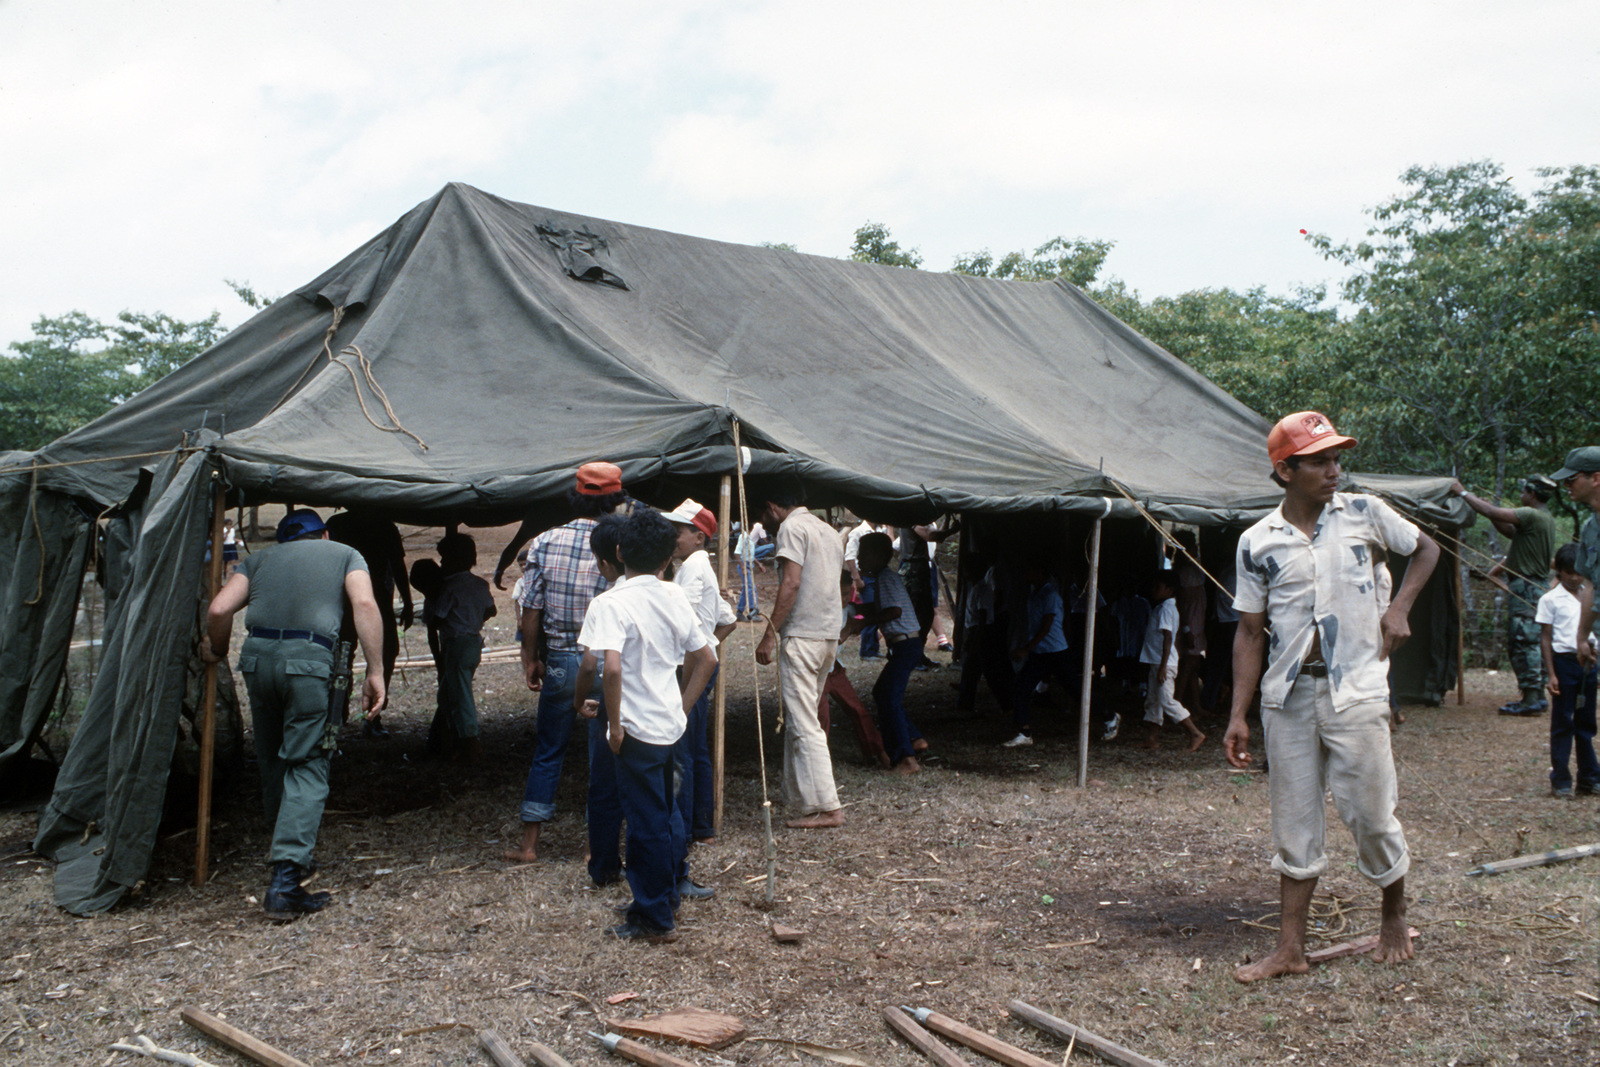 Villagers gather at a camp tent during a medical exercise